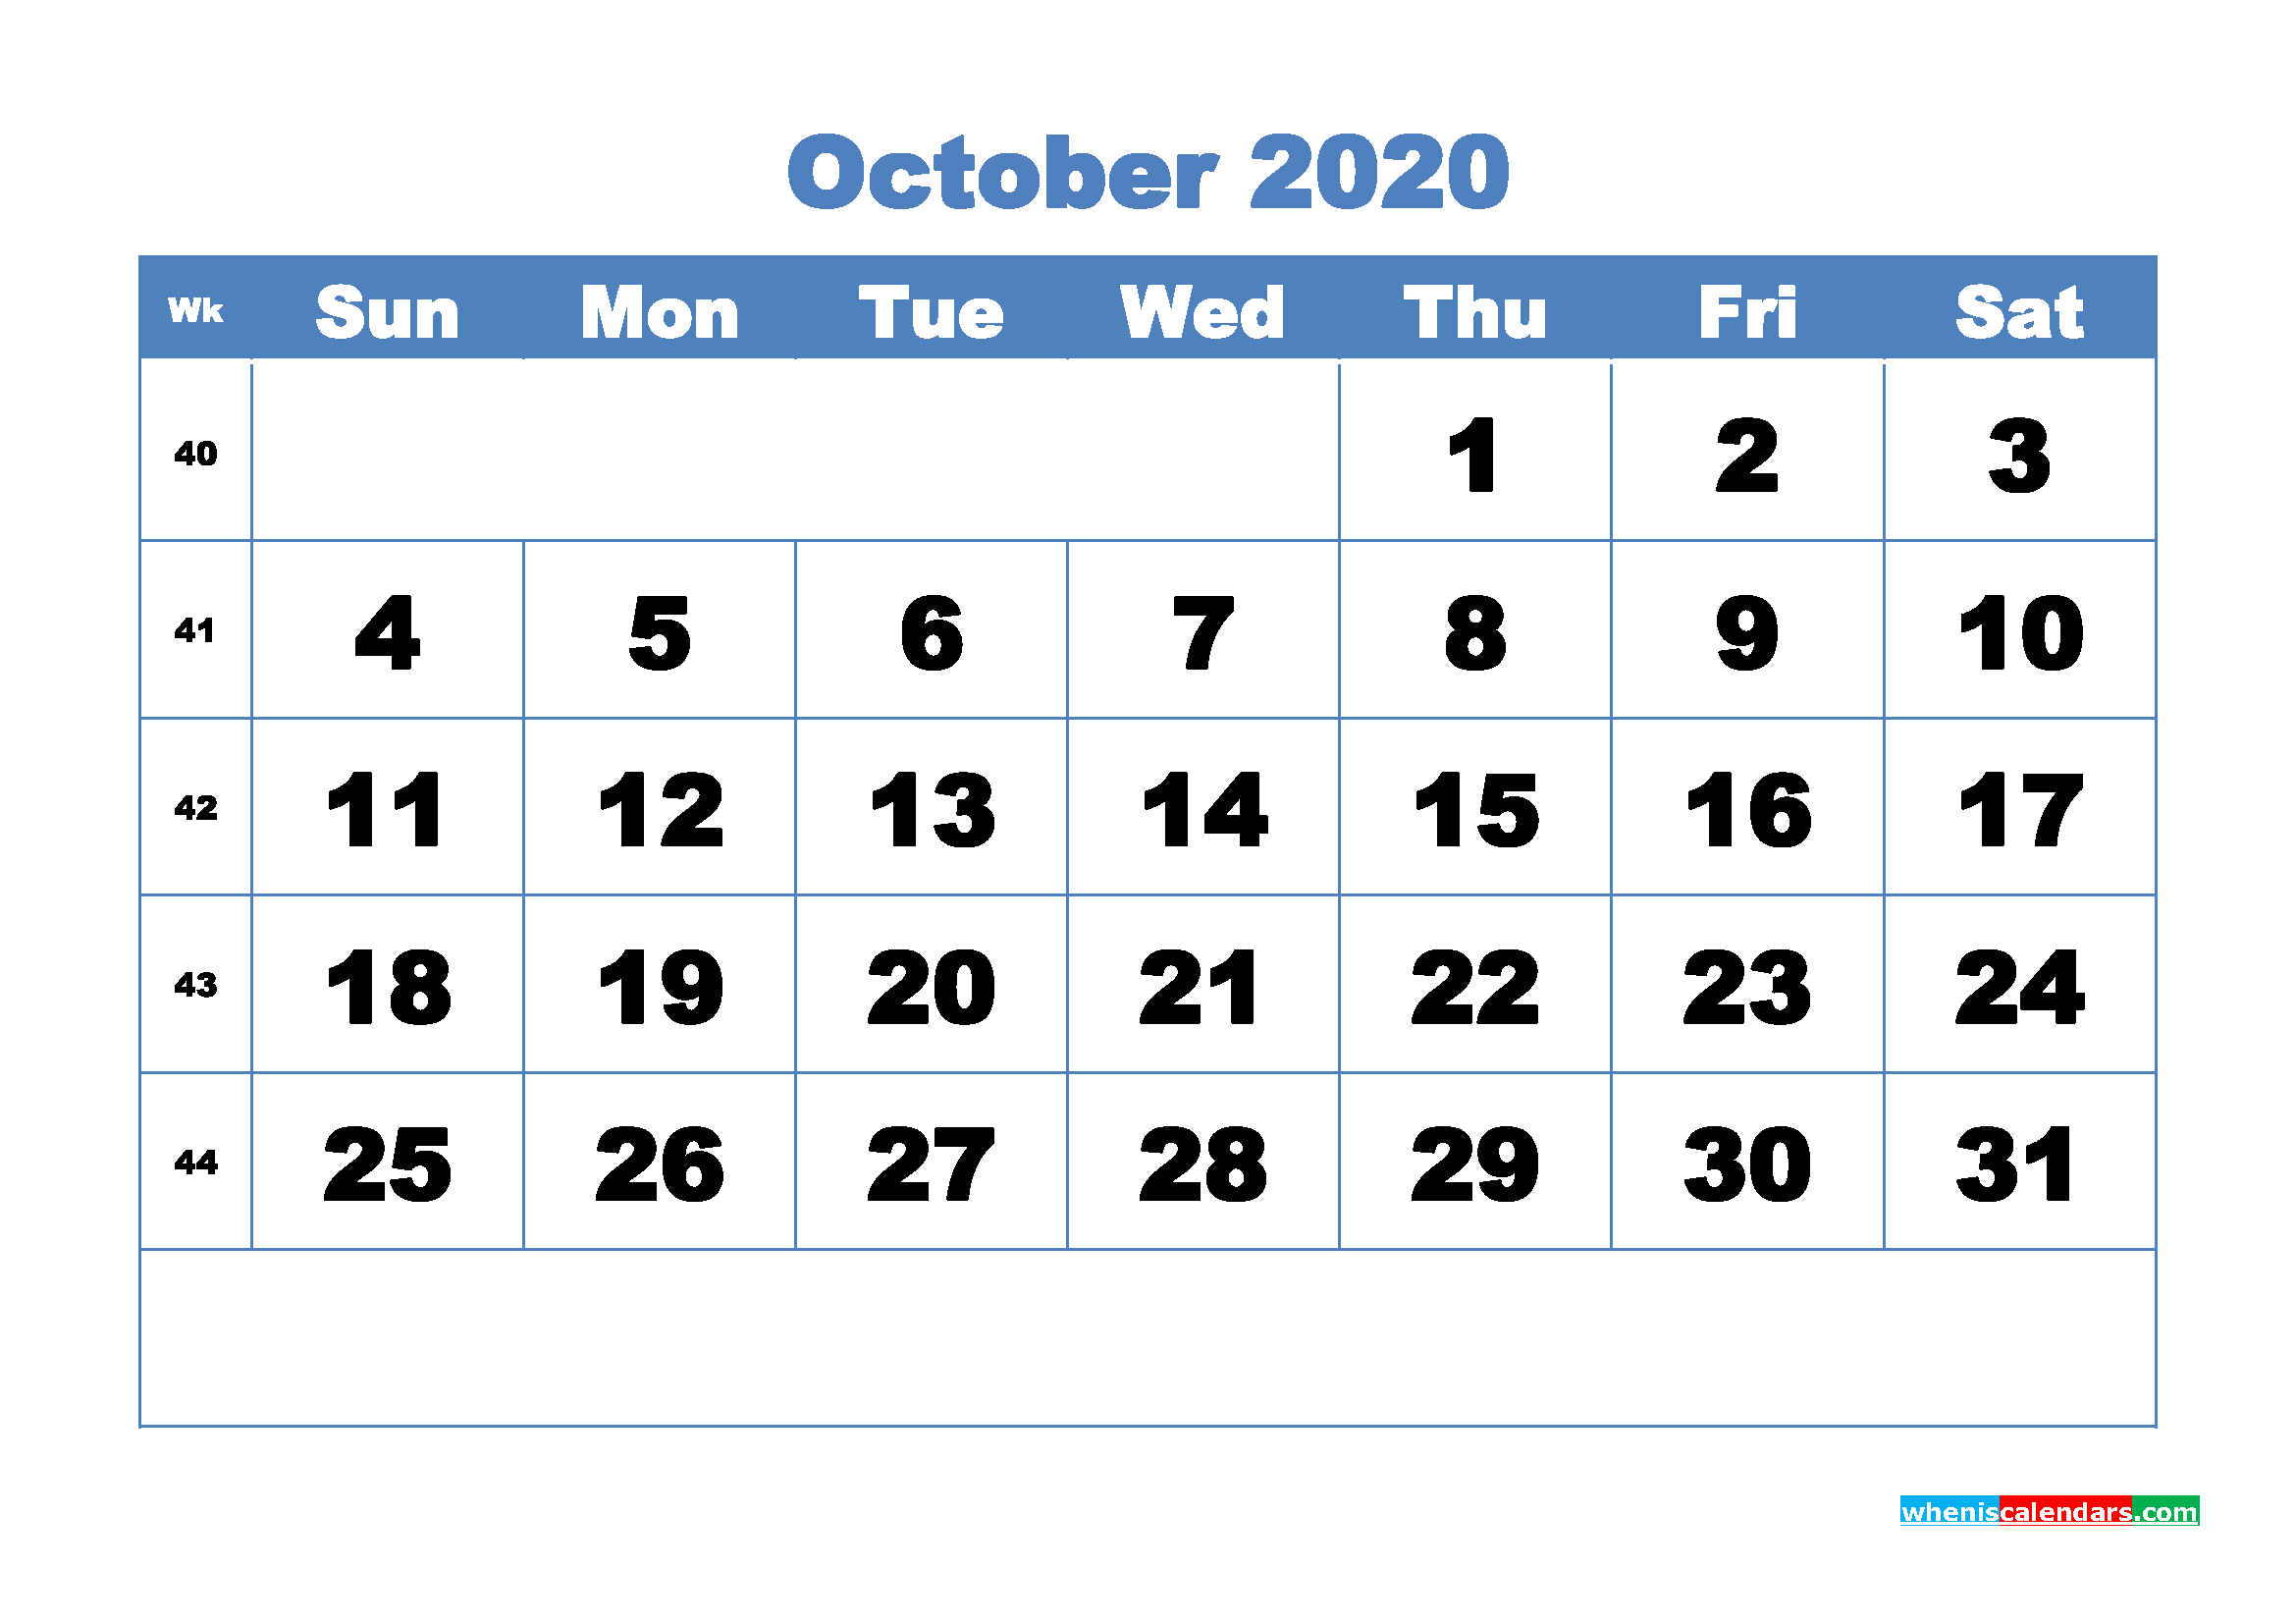 October Printable Calendar 2020 PDF, Word - No.m20b310